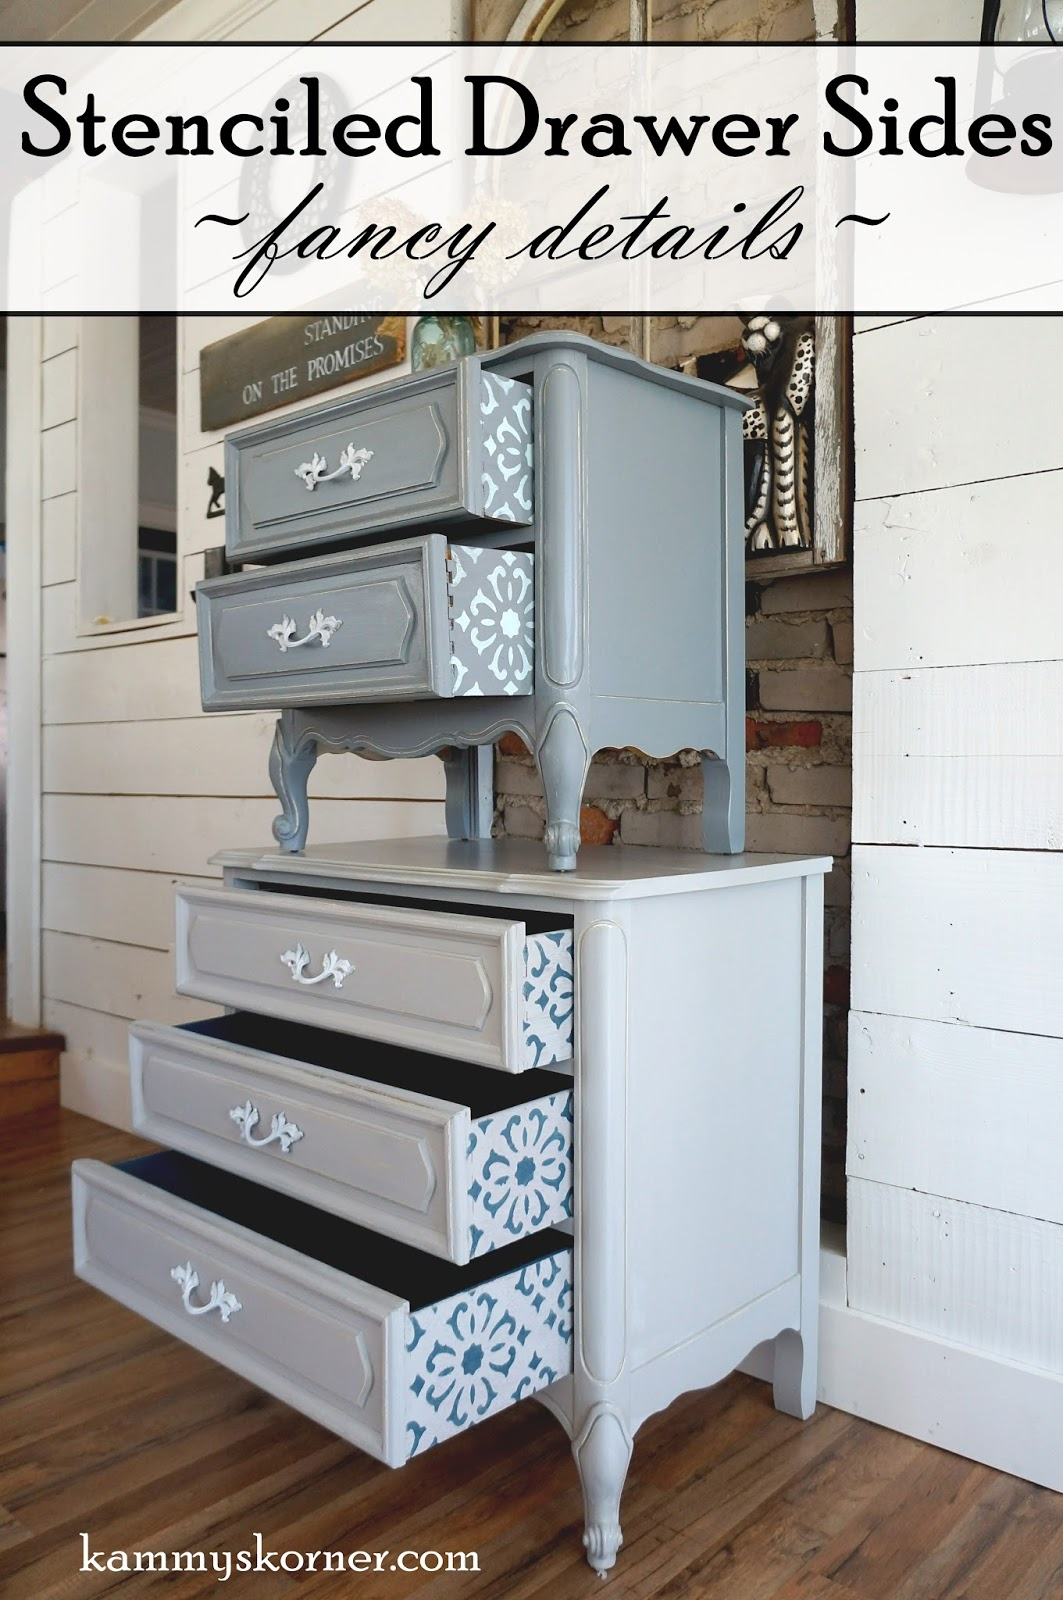 Delightful Details! French Provincial Nightstands With Stenciled Drawers